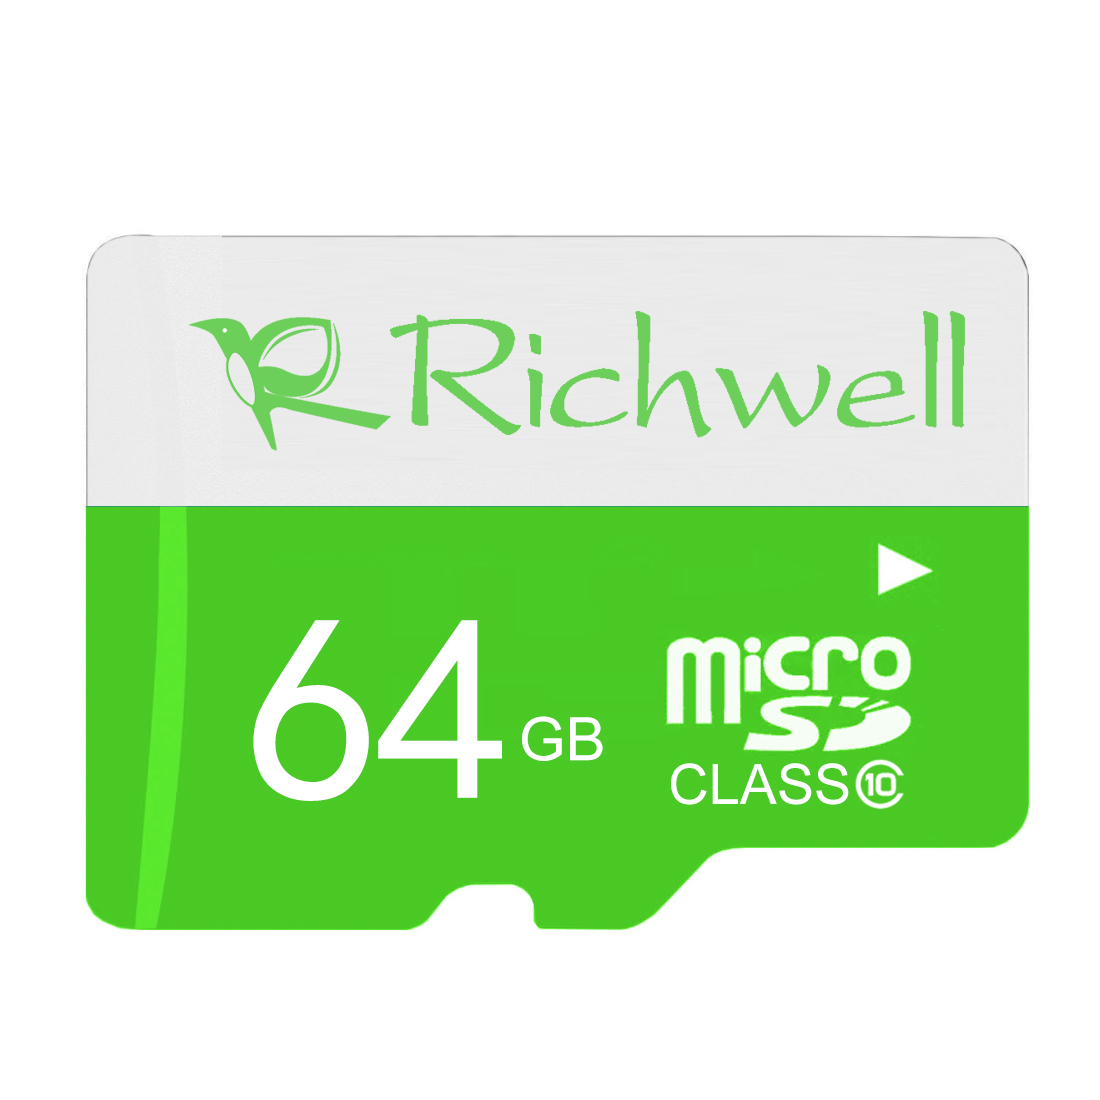 Richwell 64GB High Speed Class 10 Micro SD (TF) Memory Card